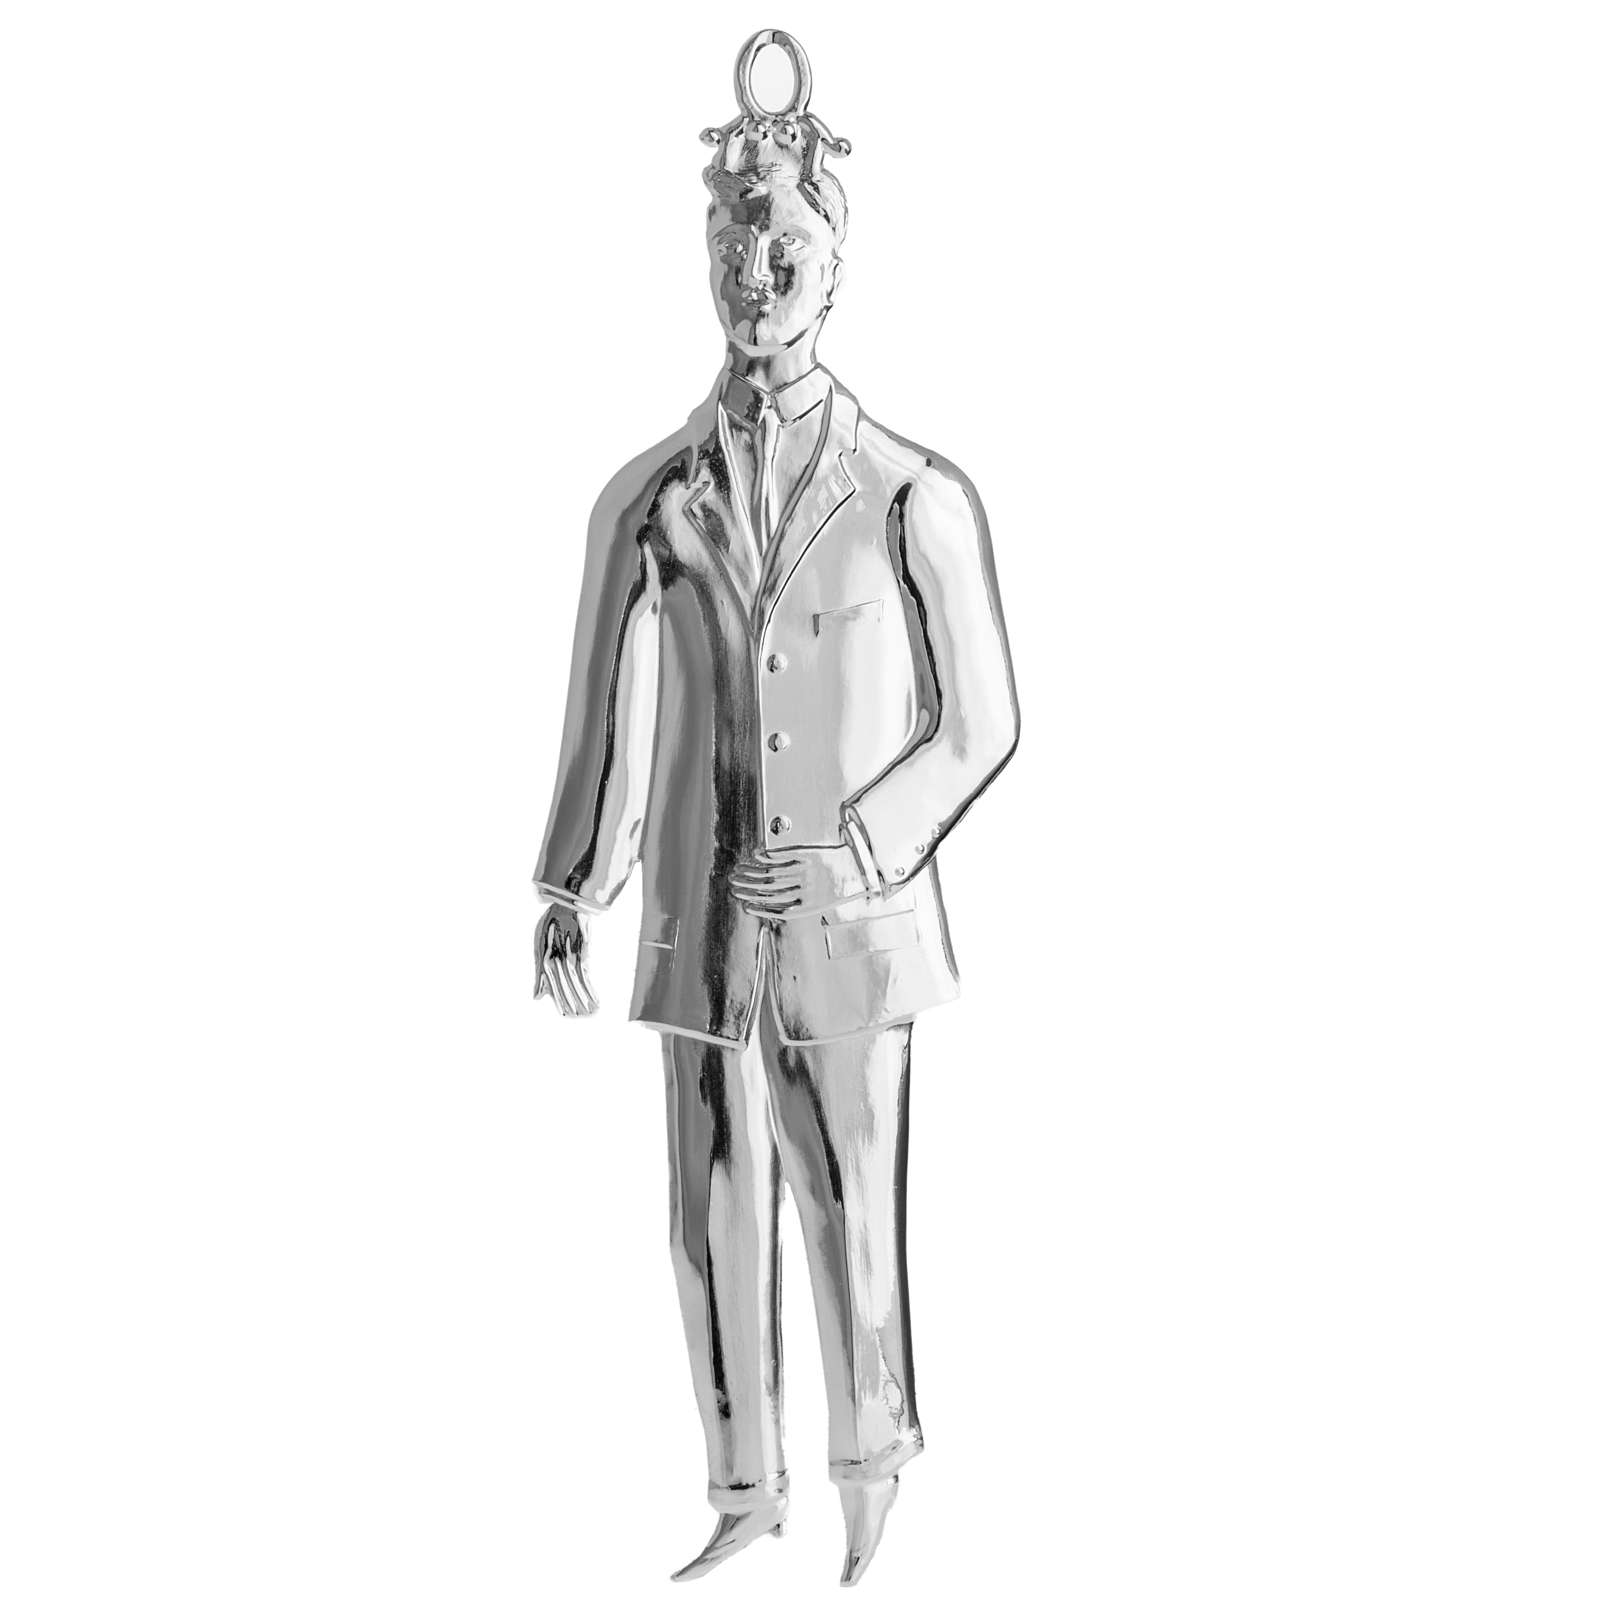 Ex-voto, man in sterling silver or metal, 21cm 3